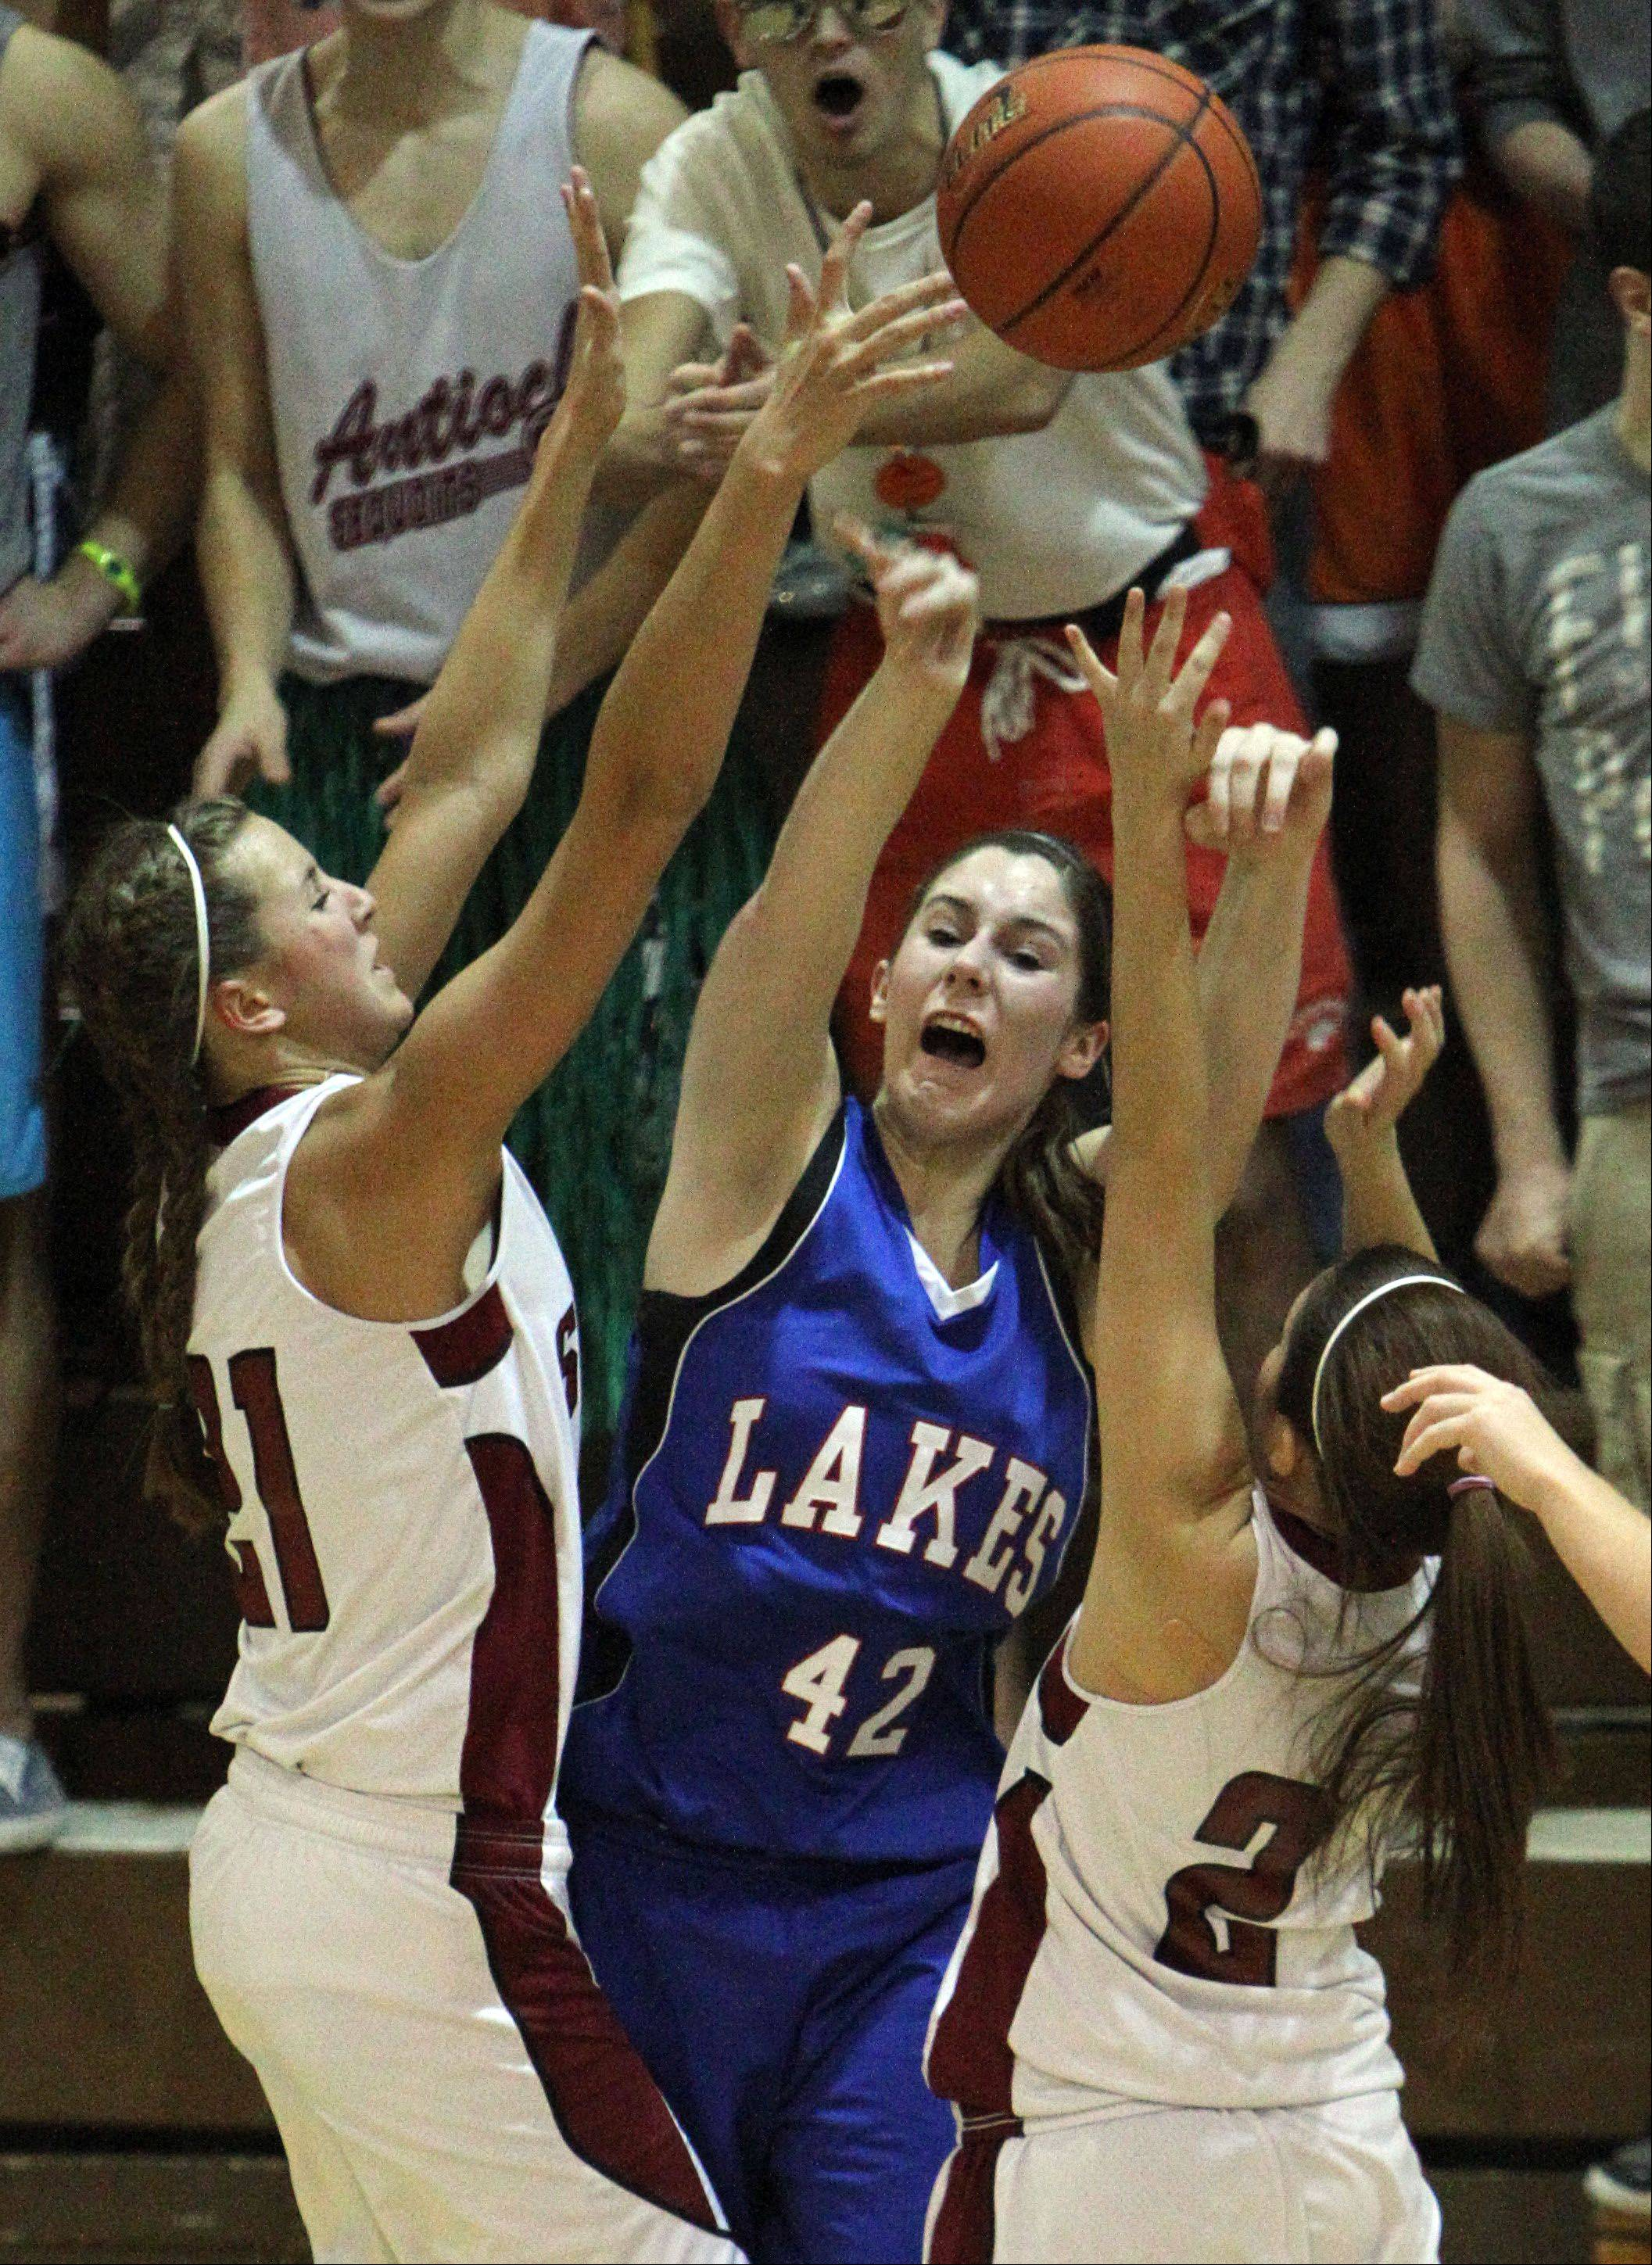 Lakes' Amanda Beetschen, center, passes the ball past Antioch's Carly McCameron and Rachel Schwabe.